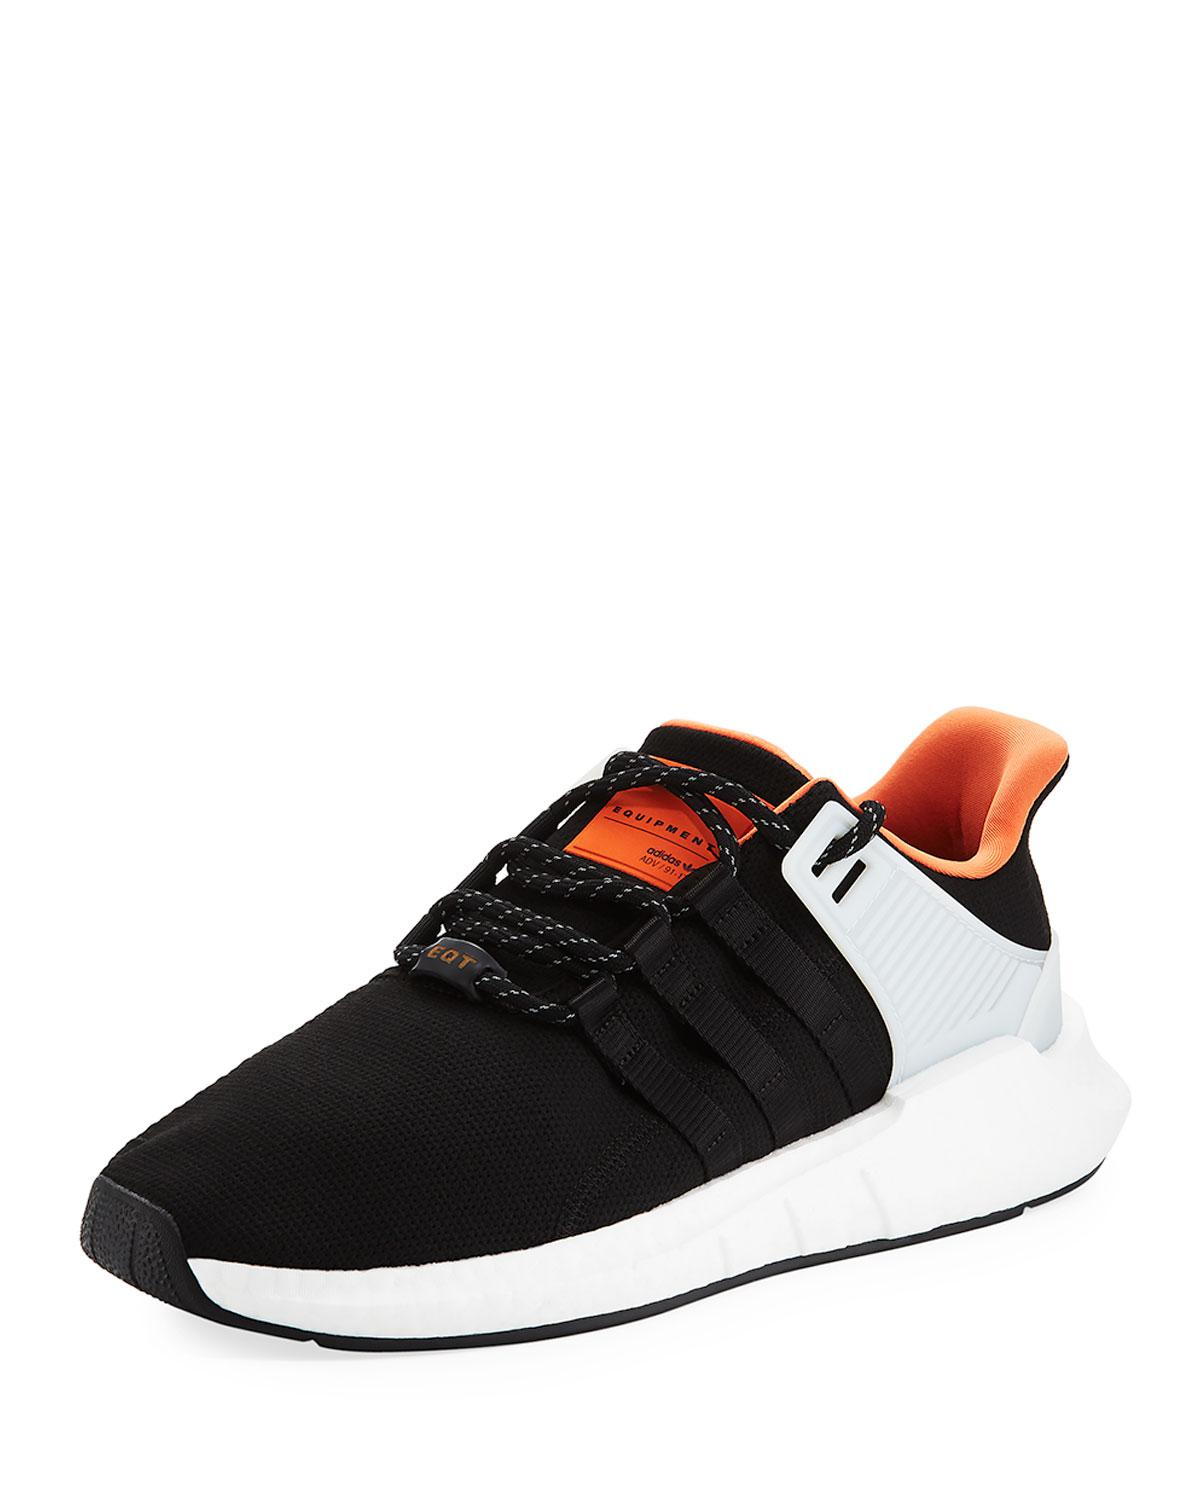 Twinstrike Adv Trainers authorized dealers d50f1 d7eef Lyst - Adidas Mens  Eqt Support Adv 93-17 Sneakers in ...